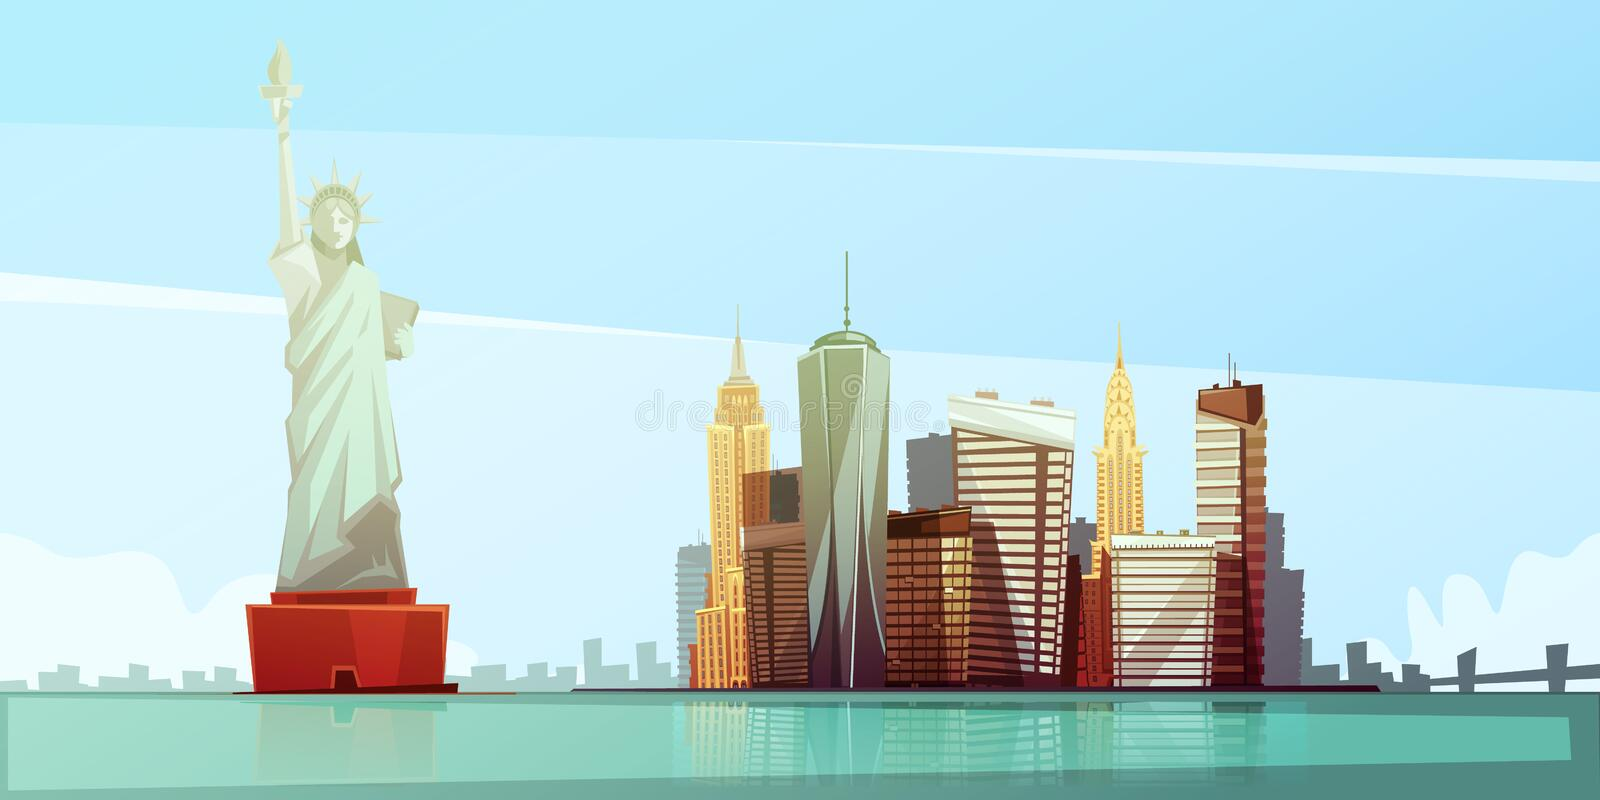 New York Skyline Design Concept. With statue of liberty empire state building chrysler building freedom tower flat vector illustration vector illustration